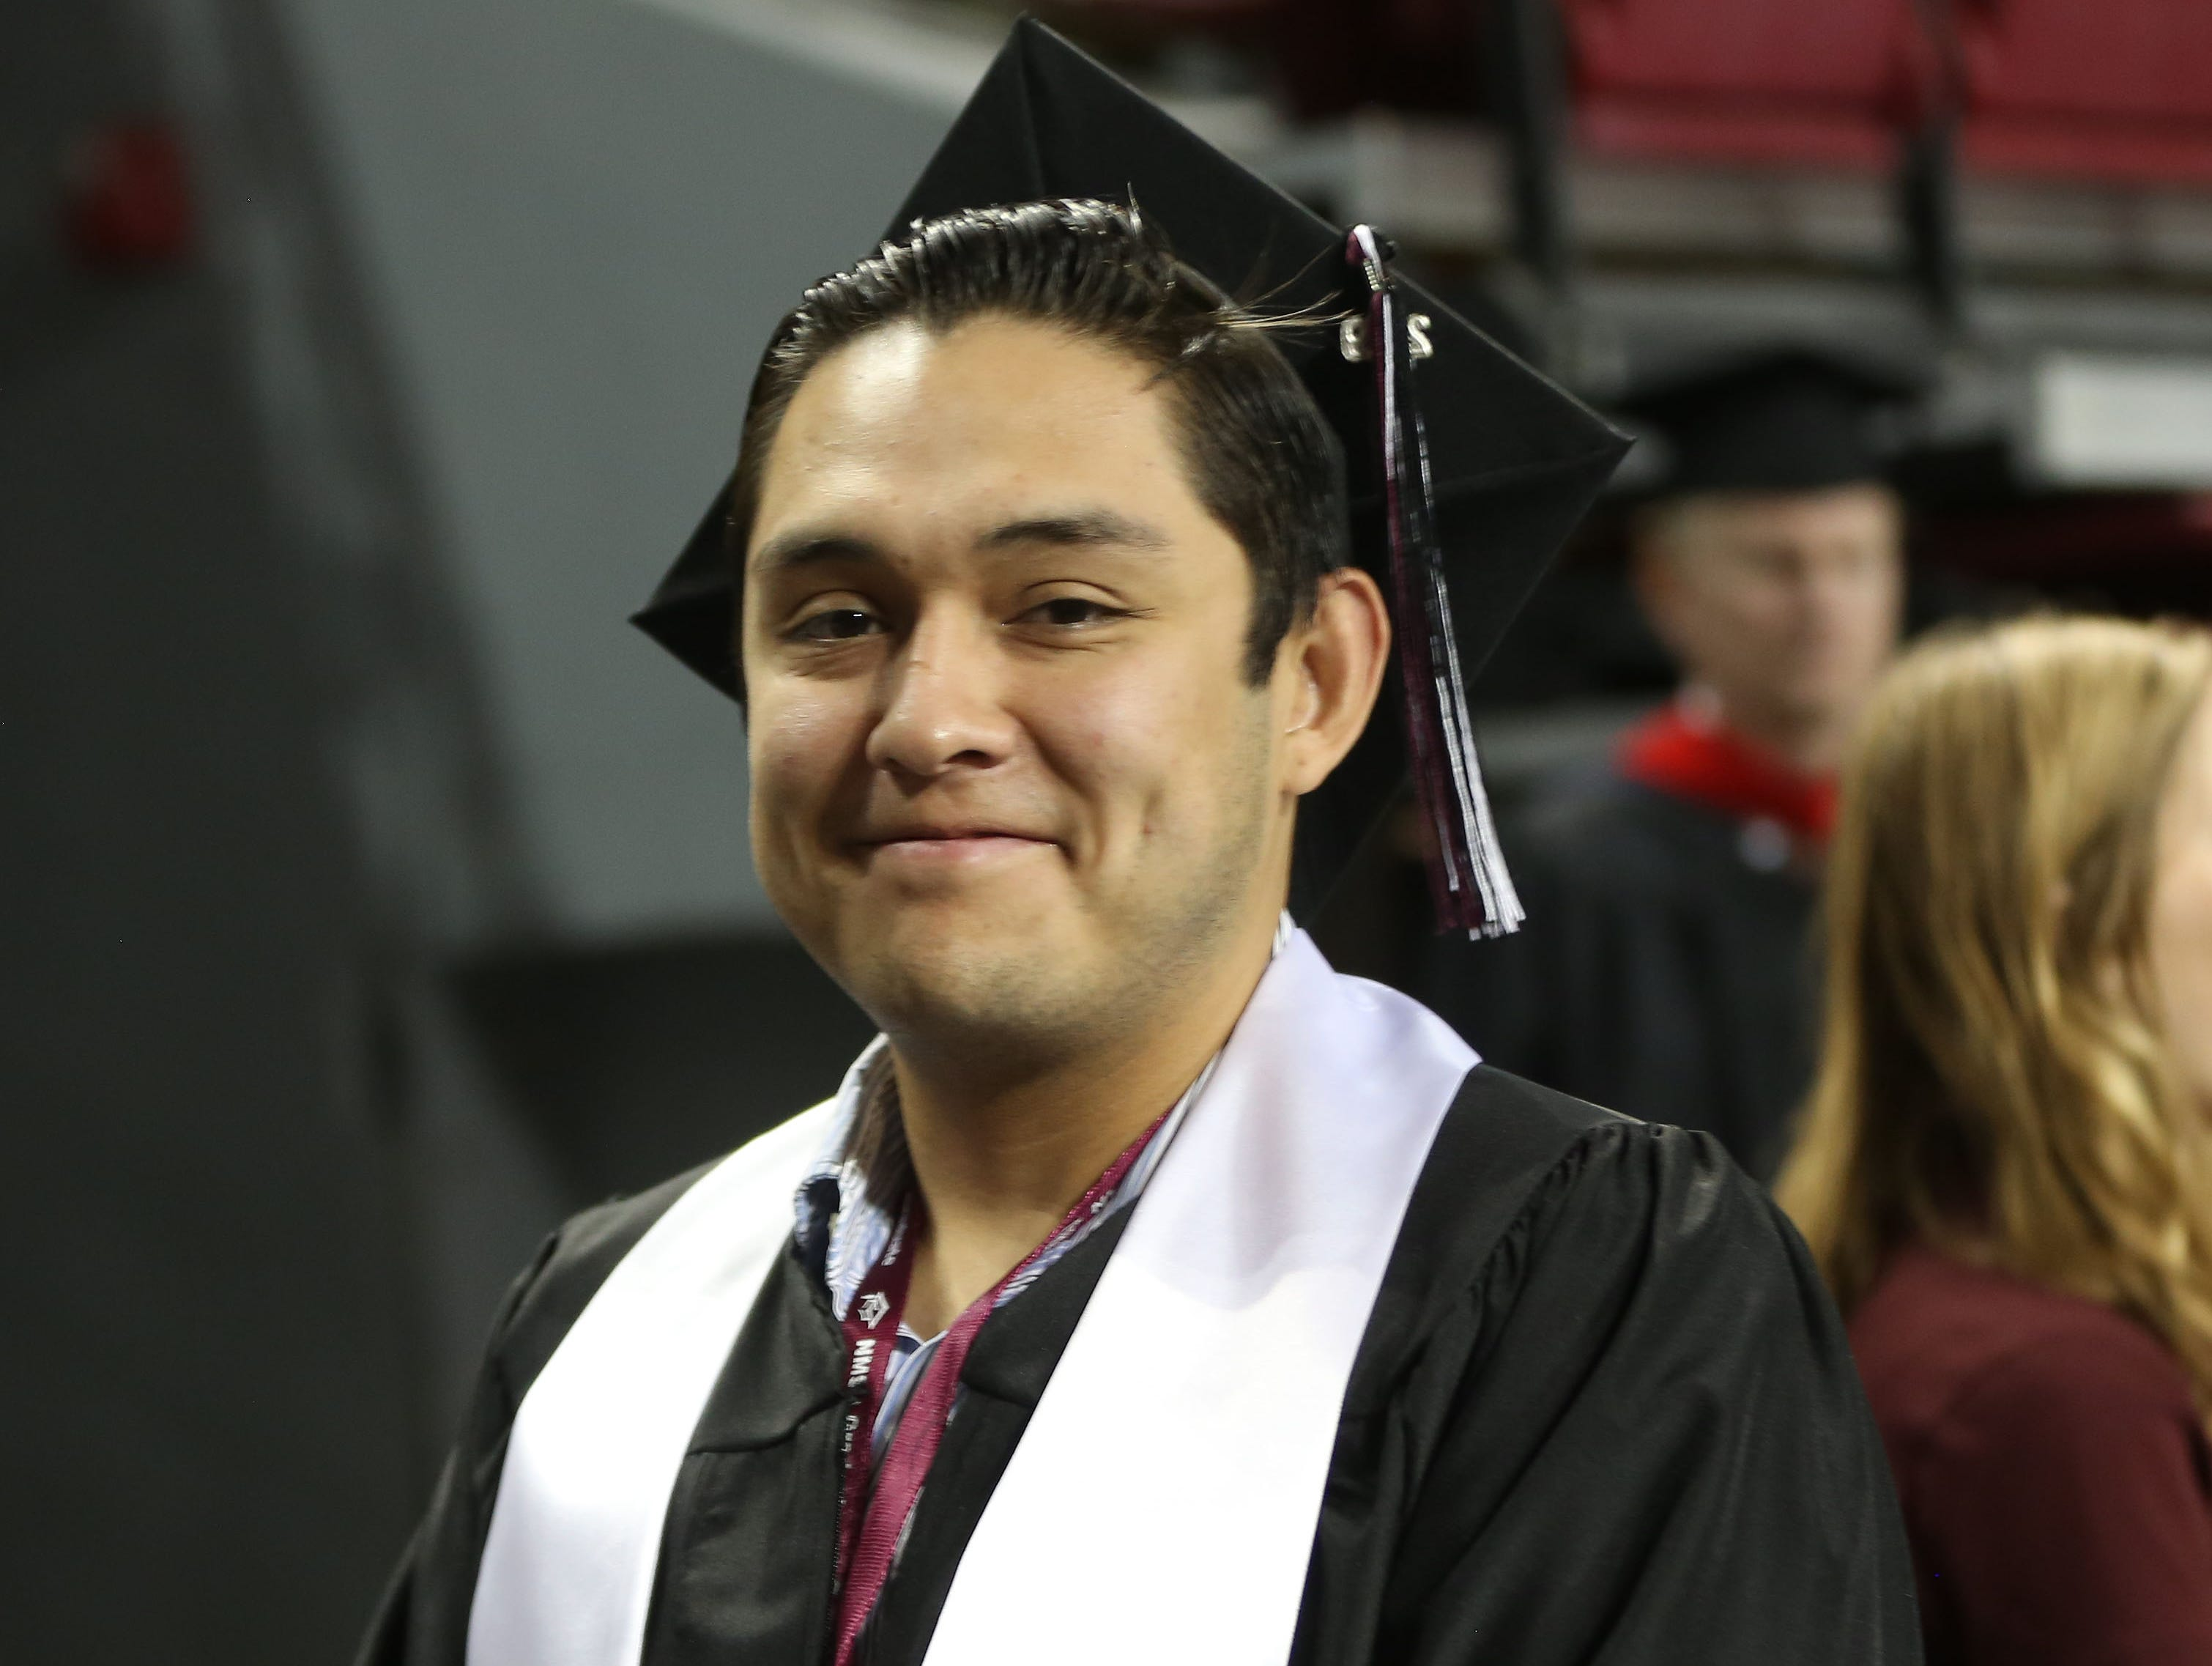 A student smiles proudly, after receiving his degree, Saturday May 11, 2019, at the New Mexico State University commencement ceremony.